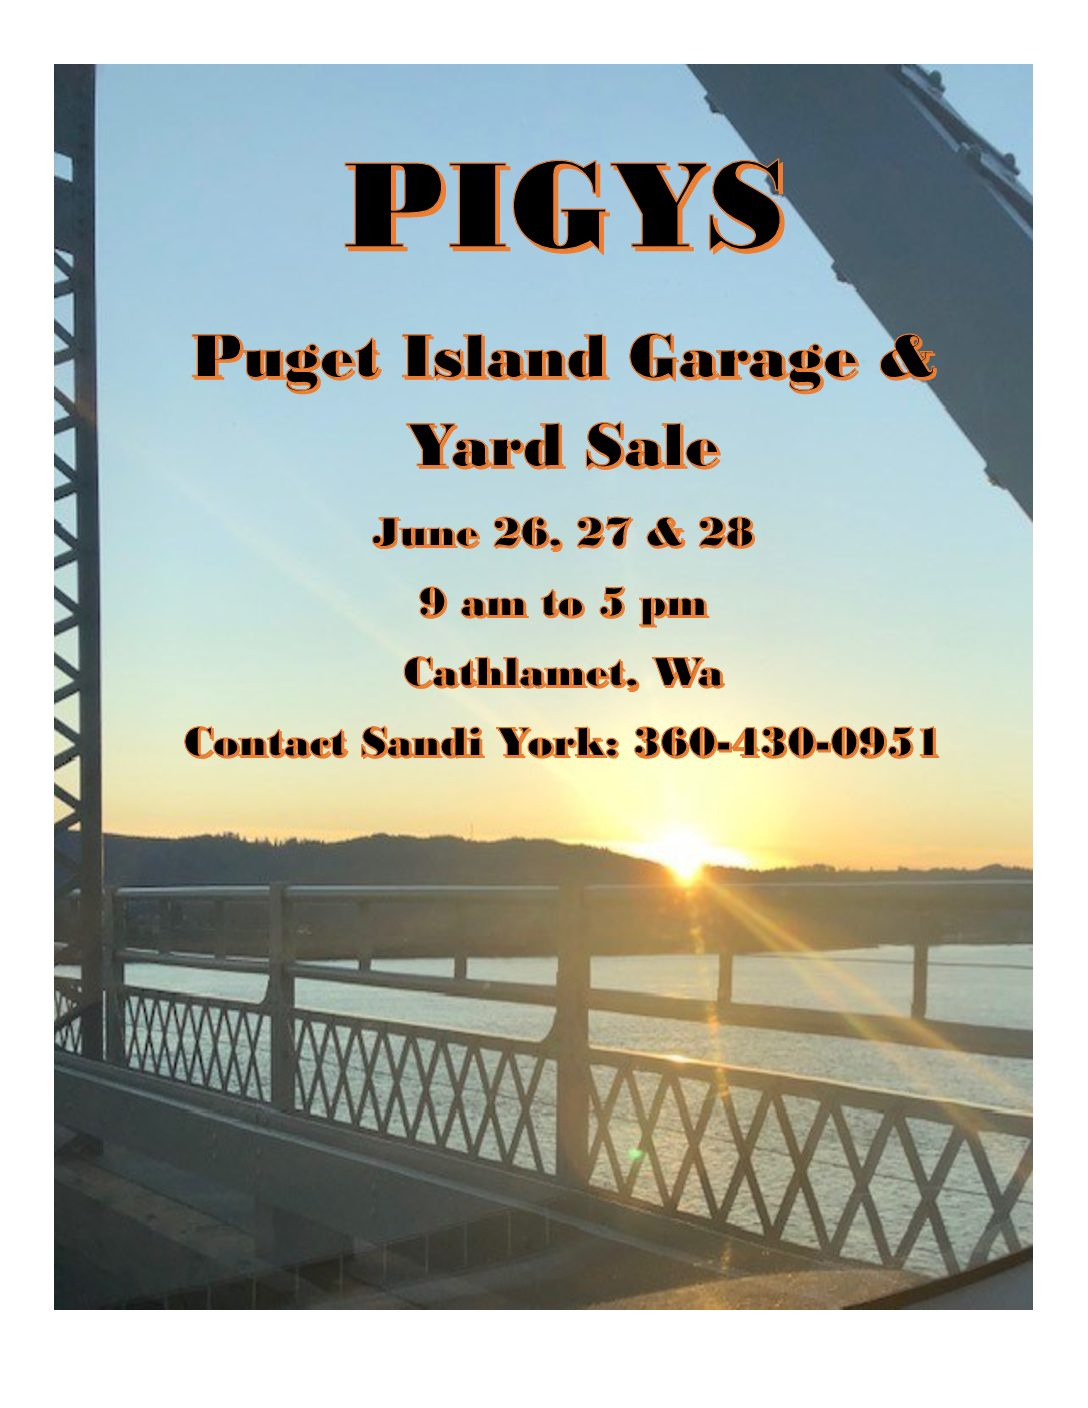 Puget Island Garage & Yard Sale 2020 – CANCELLED